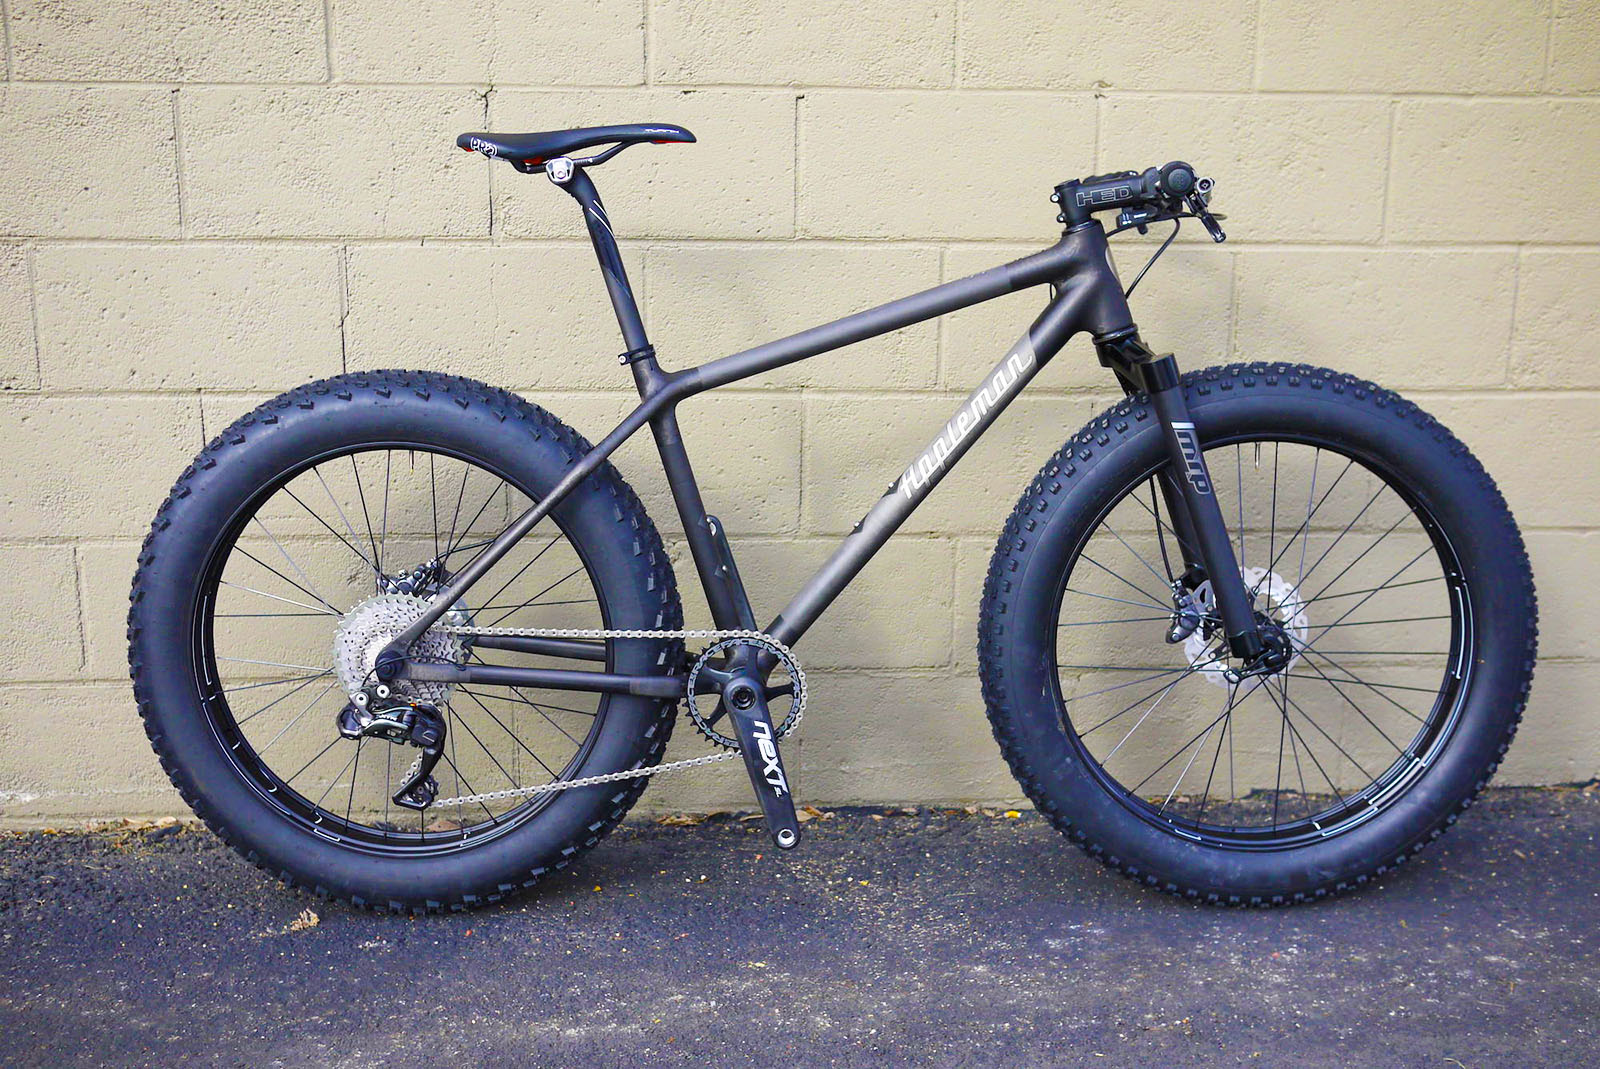 Appleman Bicycles: The 20lb fat bike